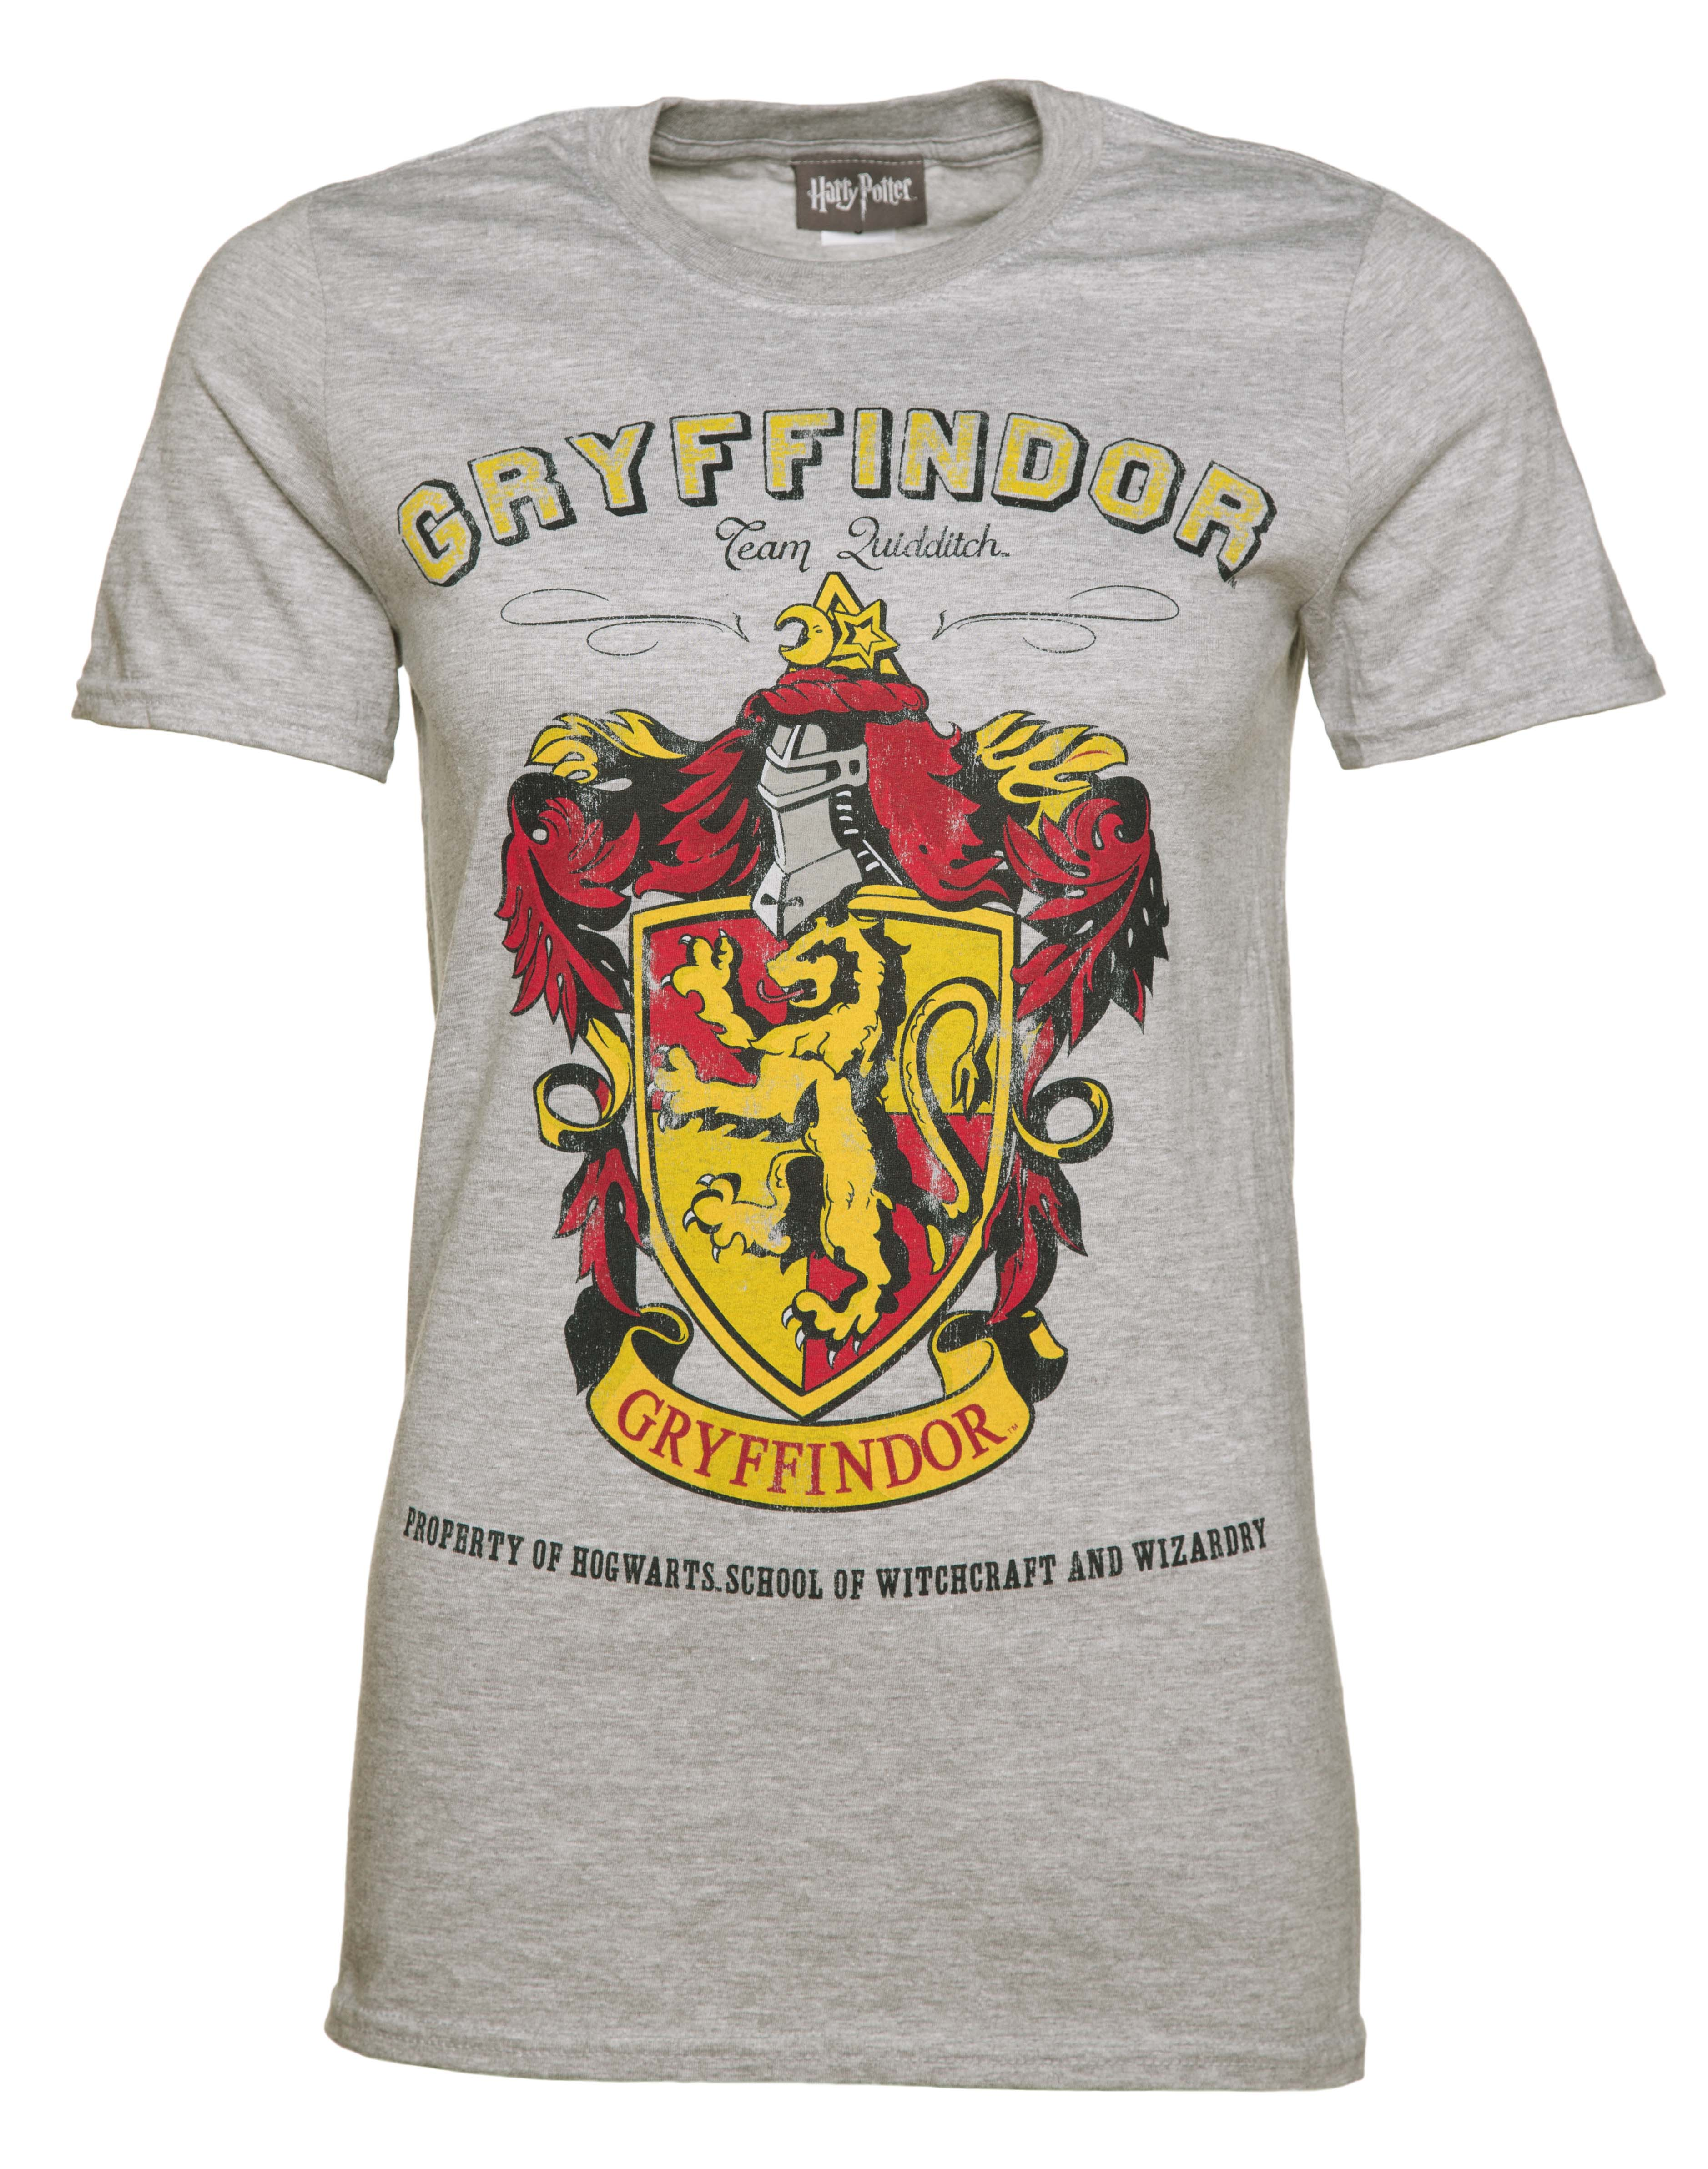 c40a052f Ladies Grey Harry Potter Gryffindor Team Quidditch T-Shirt from  TruffleShuffle - Intentionally distressed screen print for that authentic  vintage appeal